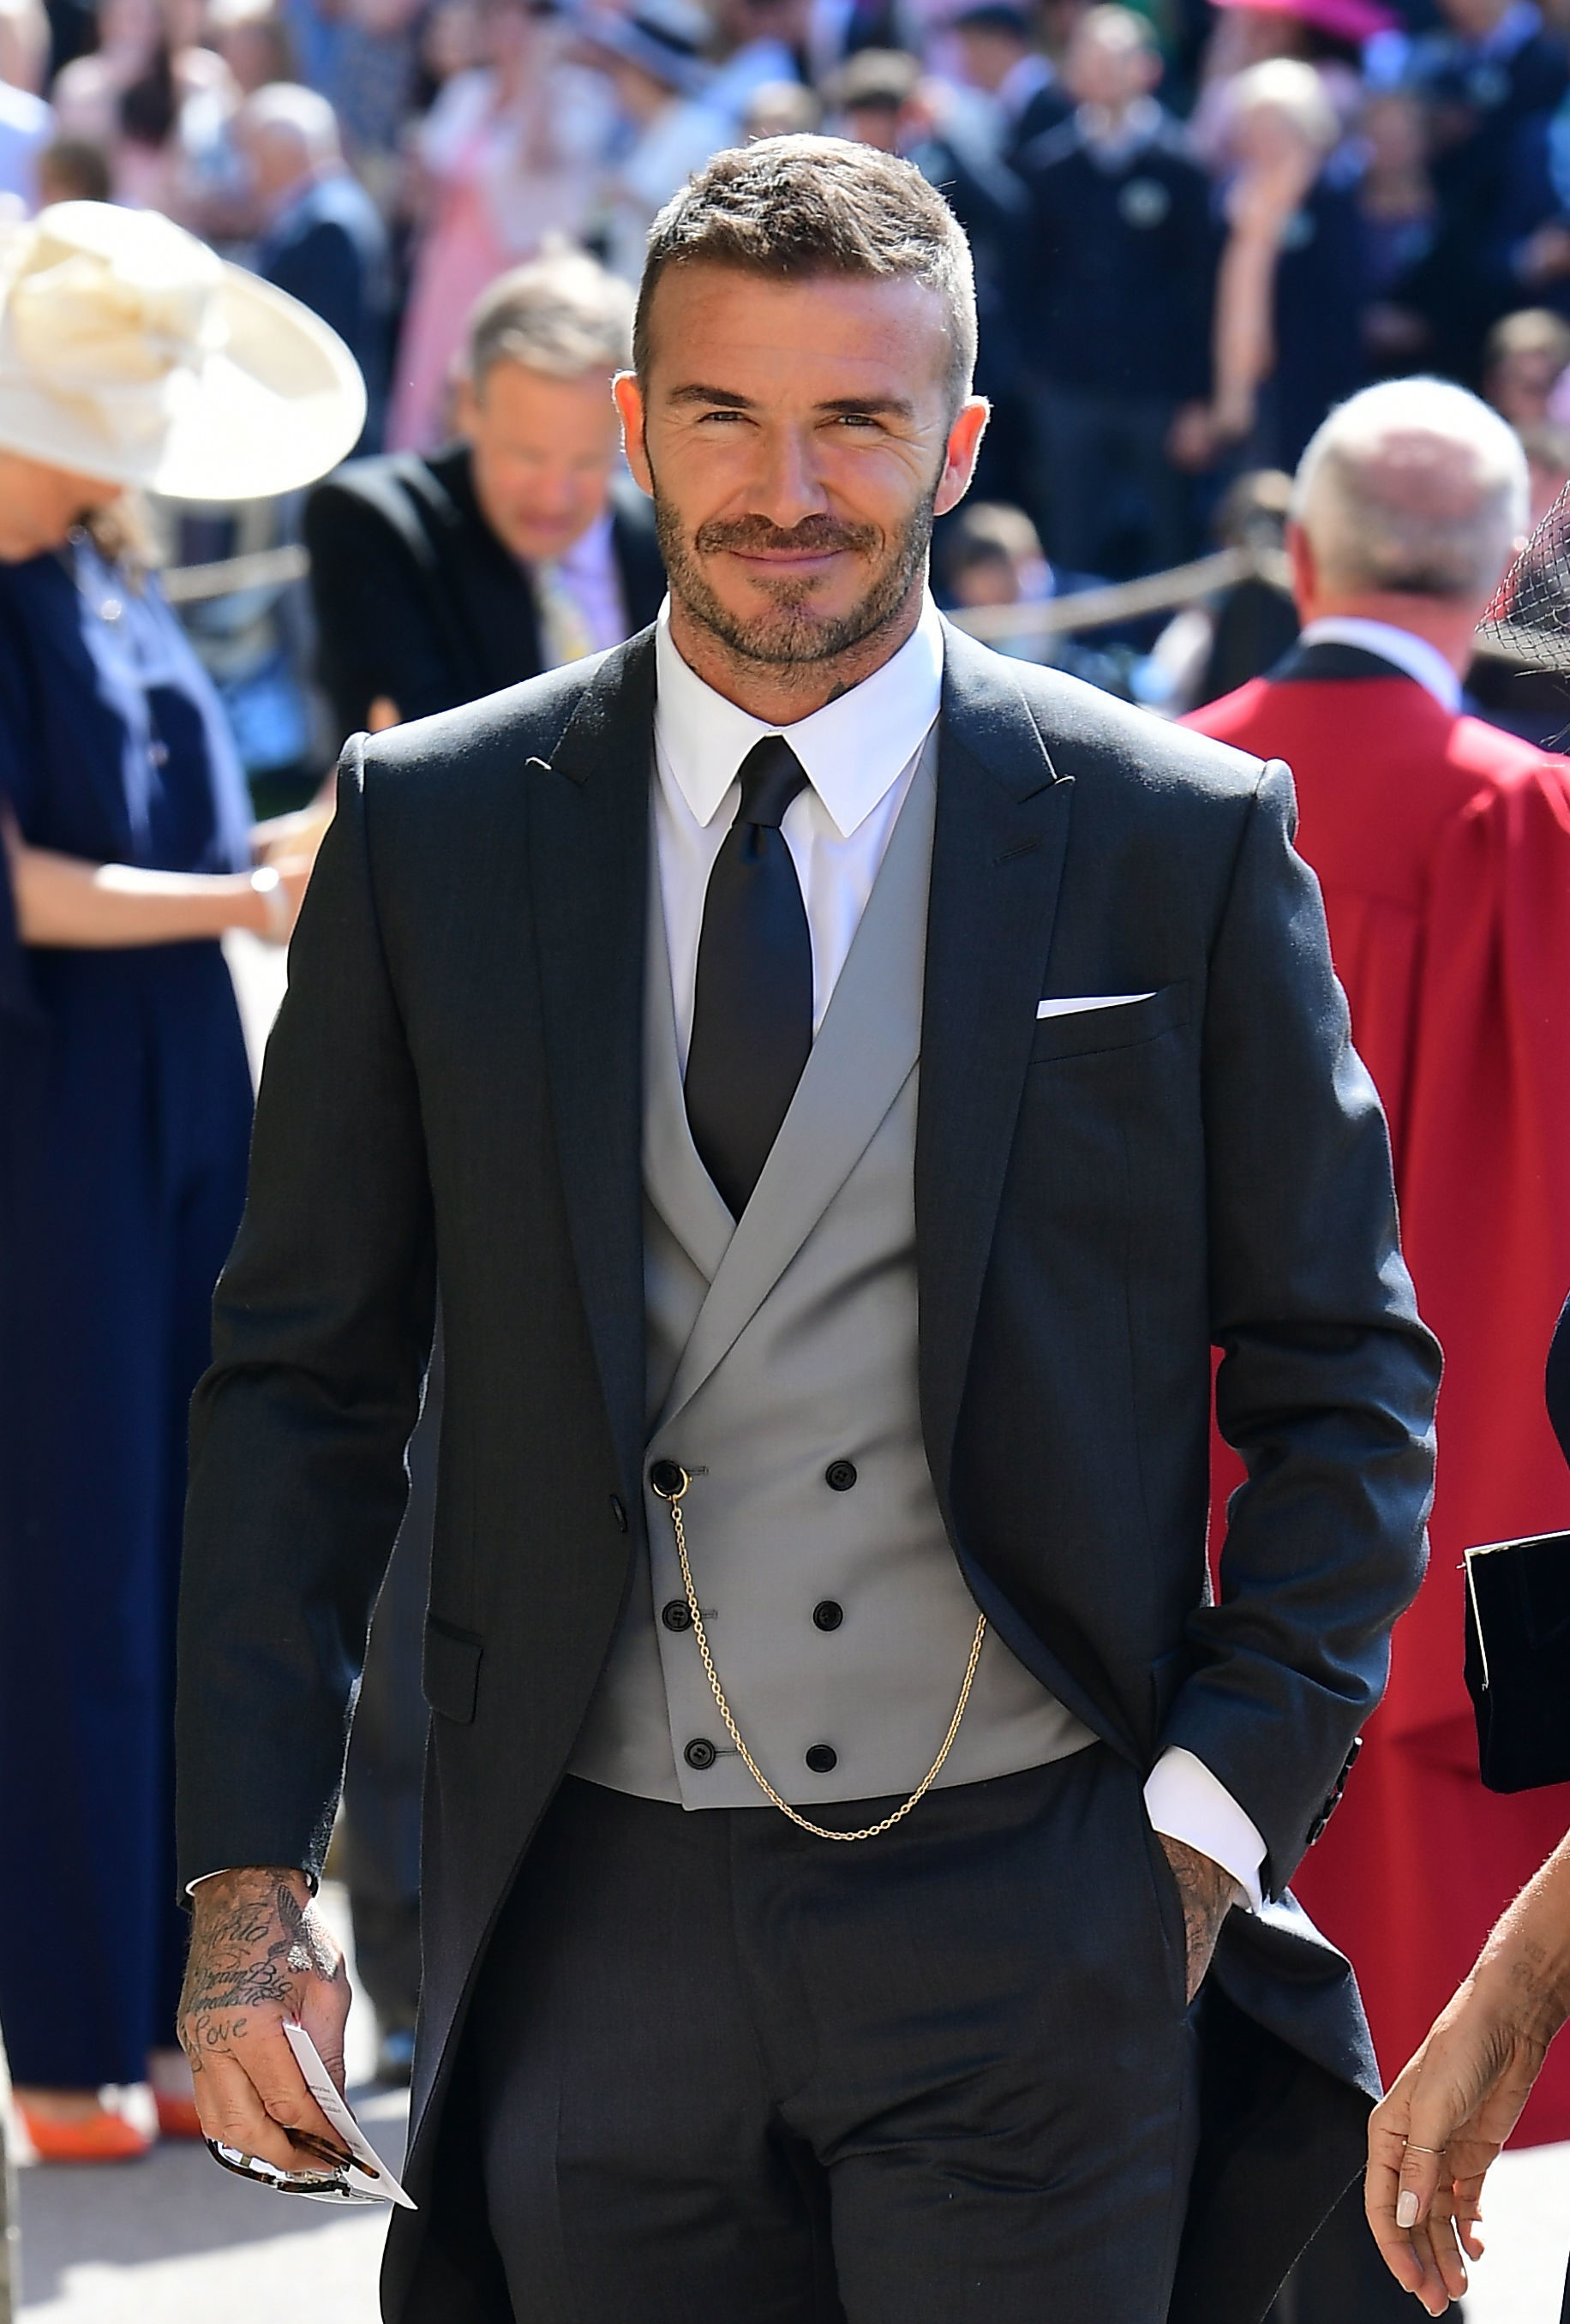 David Beckham_Royal Wedding 3